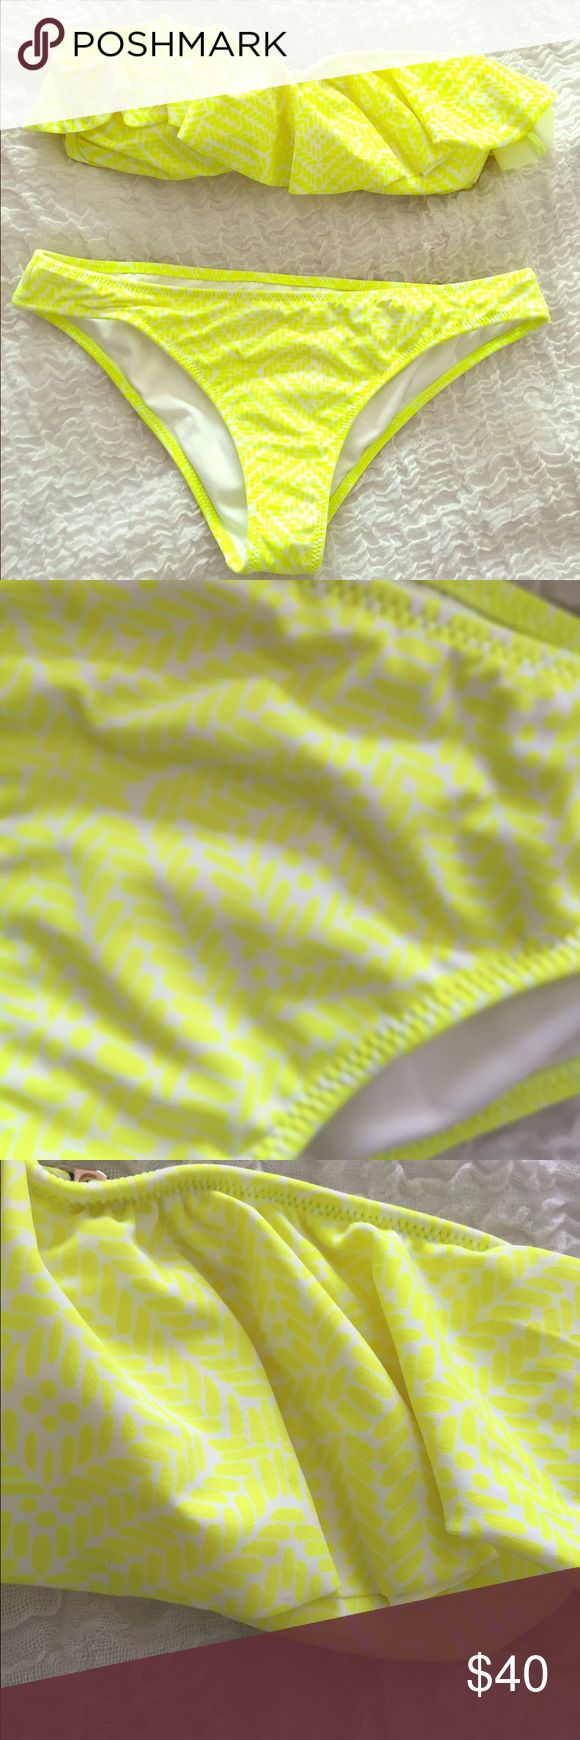 Victoria's Secret bandeau bikini Victoria's Secret size small bandeau bikini. Neon yellow with white geometric print - the print is very subtle. The top has removable padding, clasps at the back, and has a ruffle flounce top. The bottoms are the cheeky style. This has only been worn once and has a very small mark on the top (see last photo) but it is hidden by the ruffle overlay. Victoria's Secret Swim Bikinis